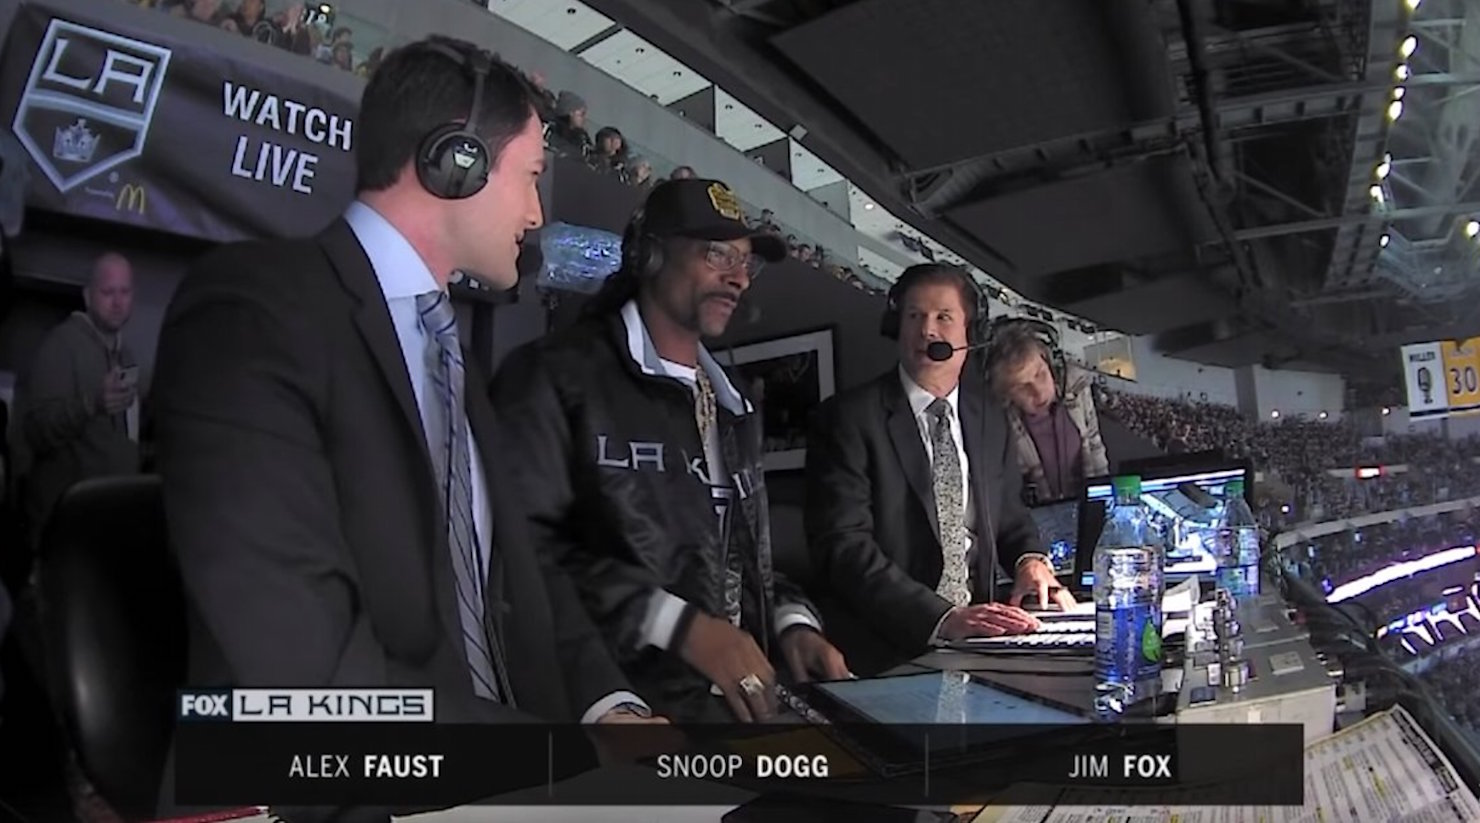 Snoop Dogg's Hockey Play-by-Play During Los Angeles Kings Game Was Hilarious